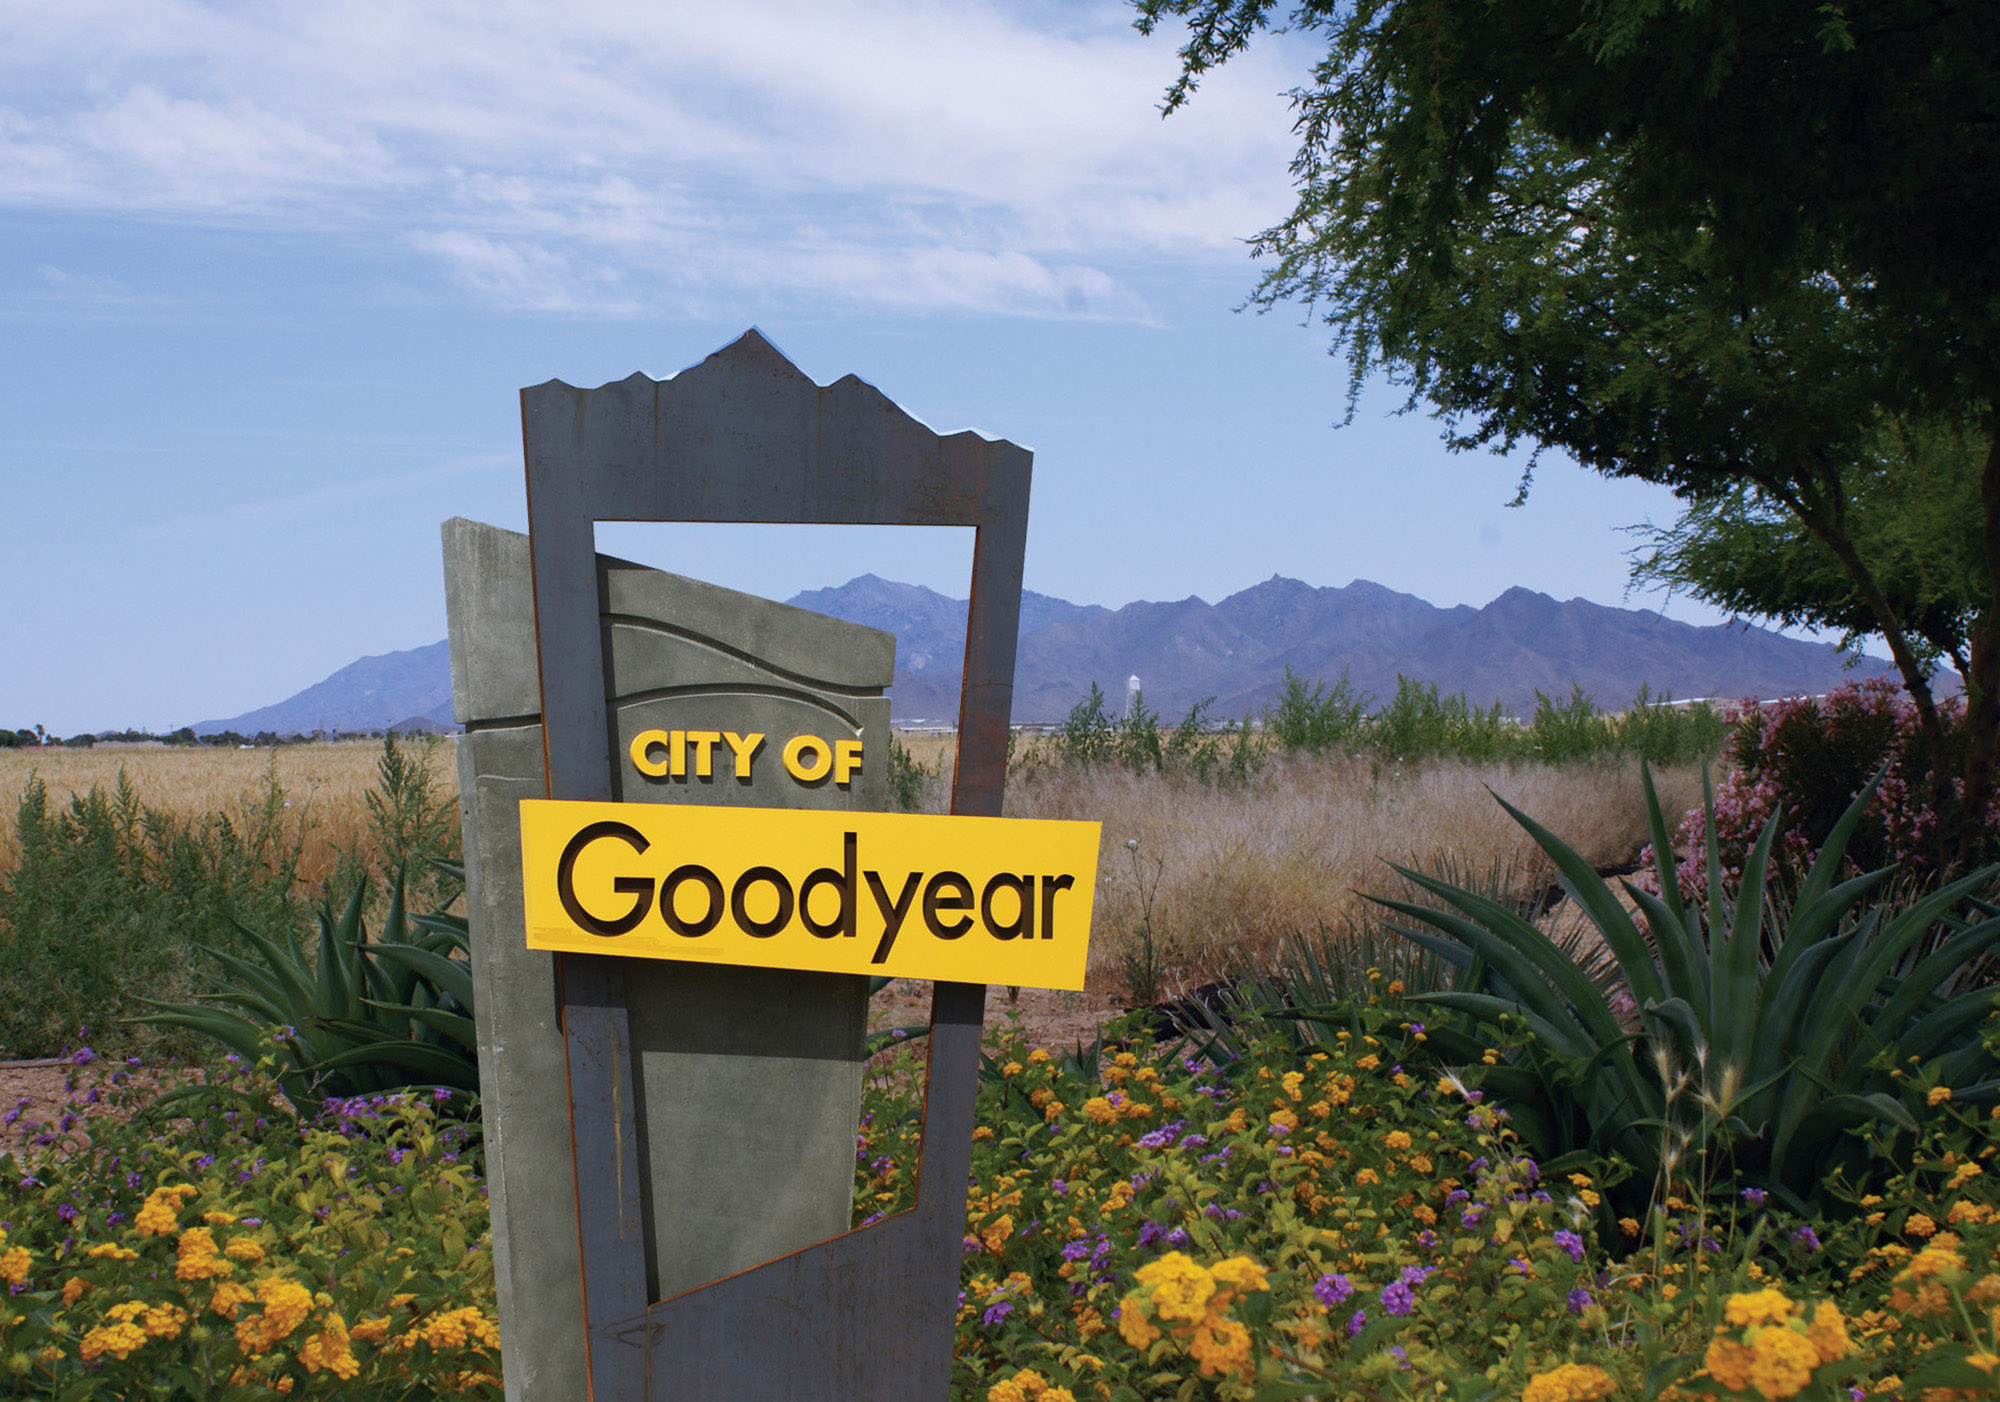 Goodyear Arizona Homes for Sale community image